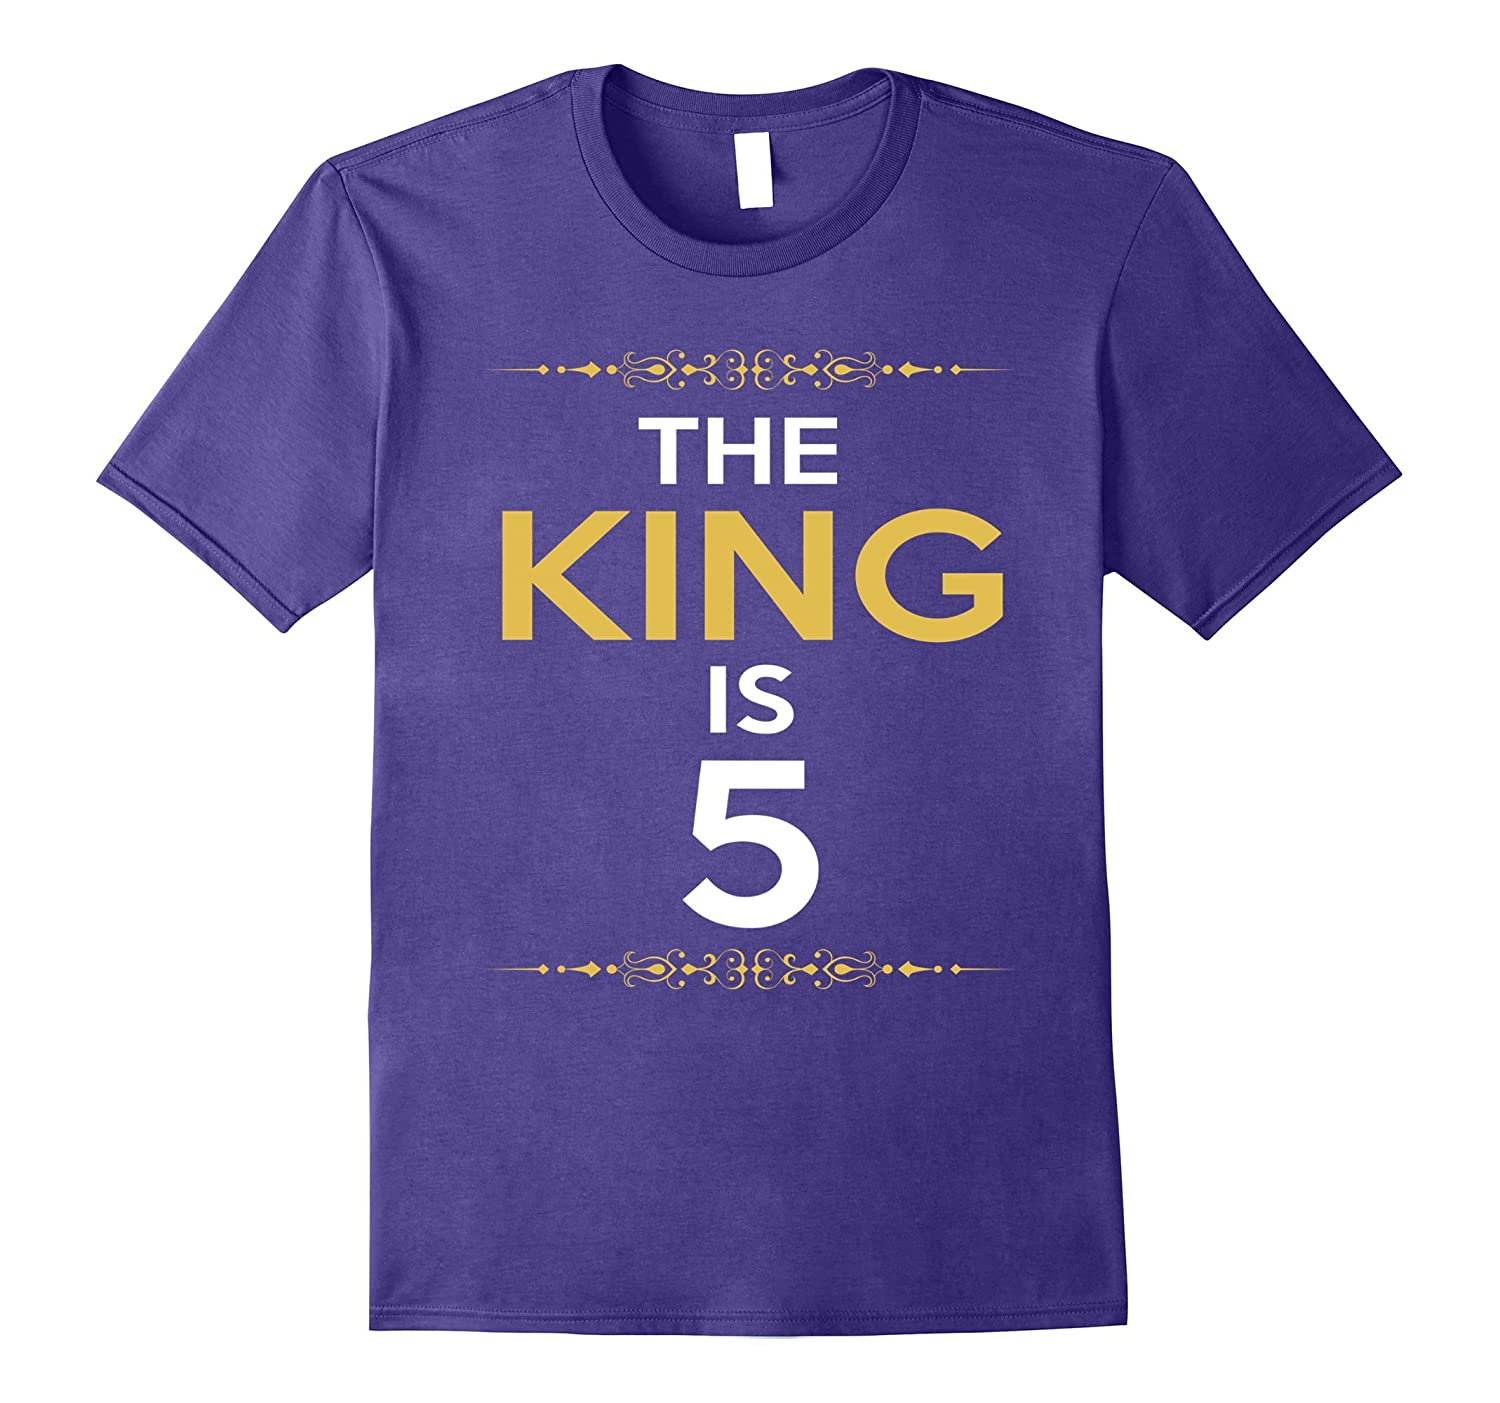 Kings Is 5 Years Old 5th Birthday Gift Ideas For Him Boy CL Colamaga